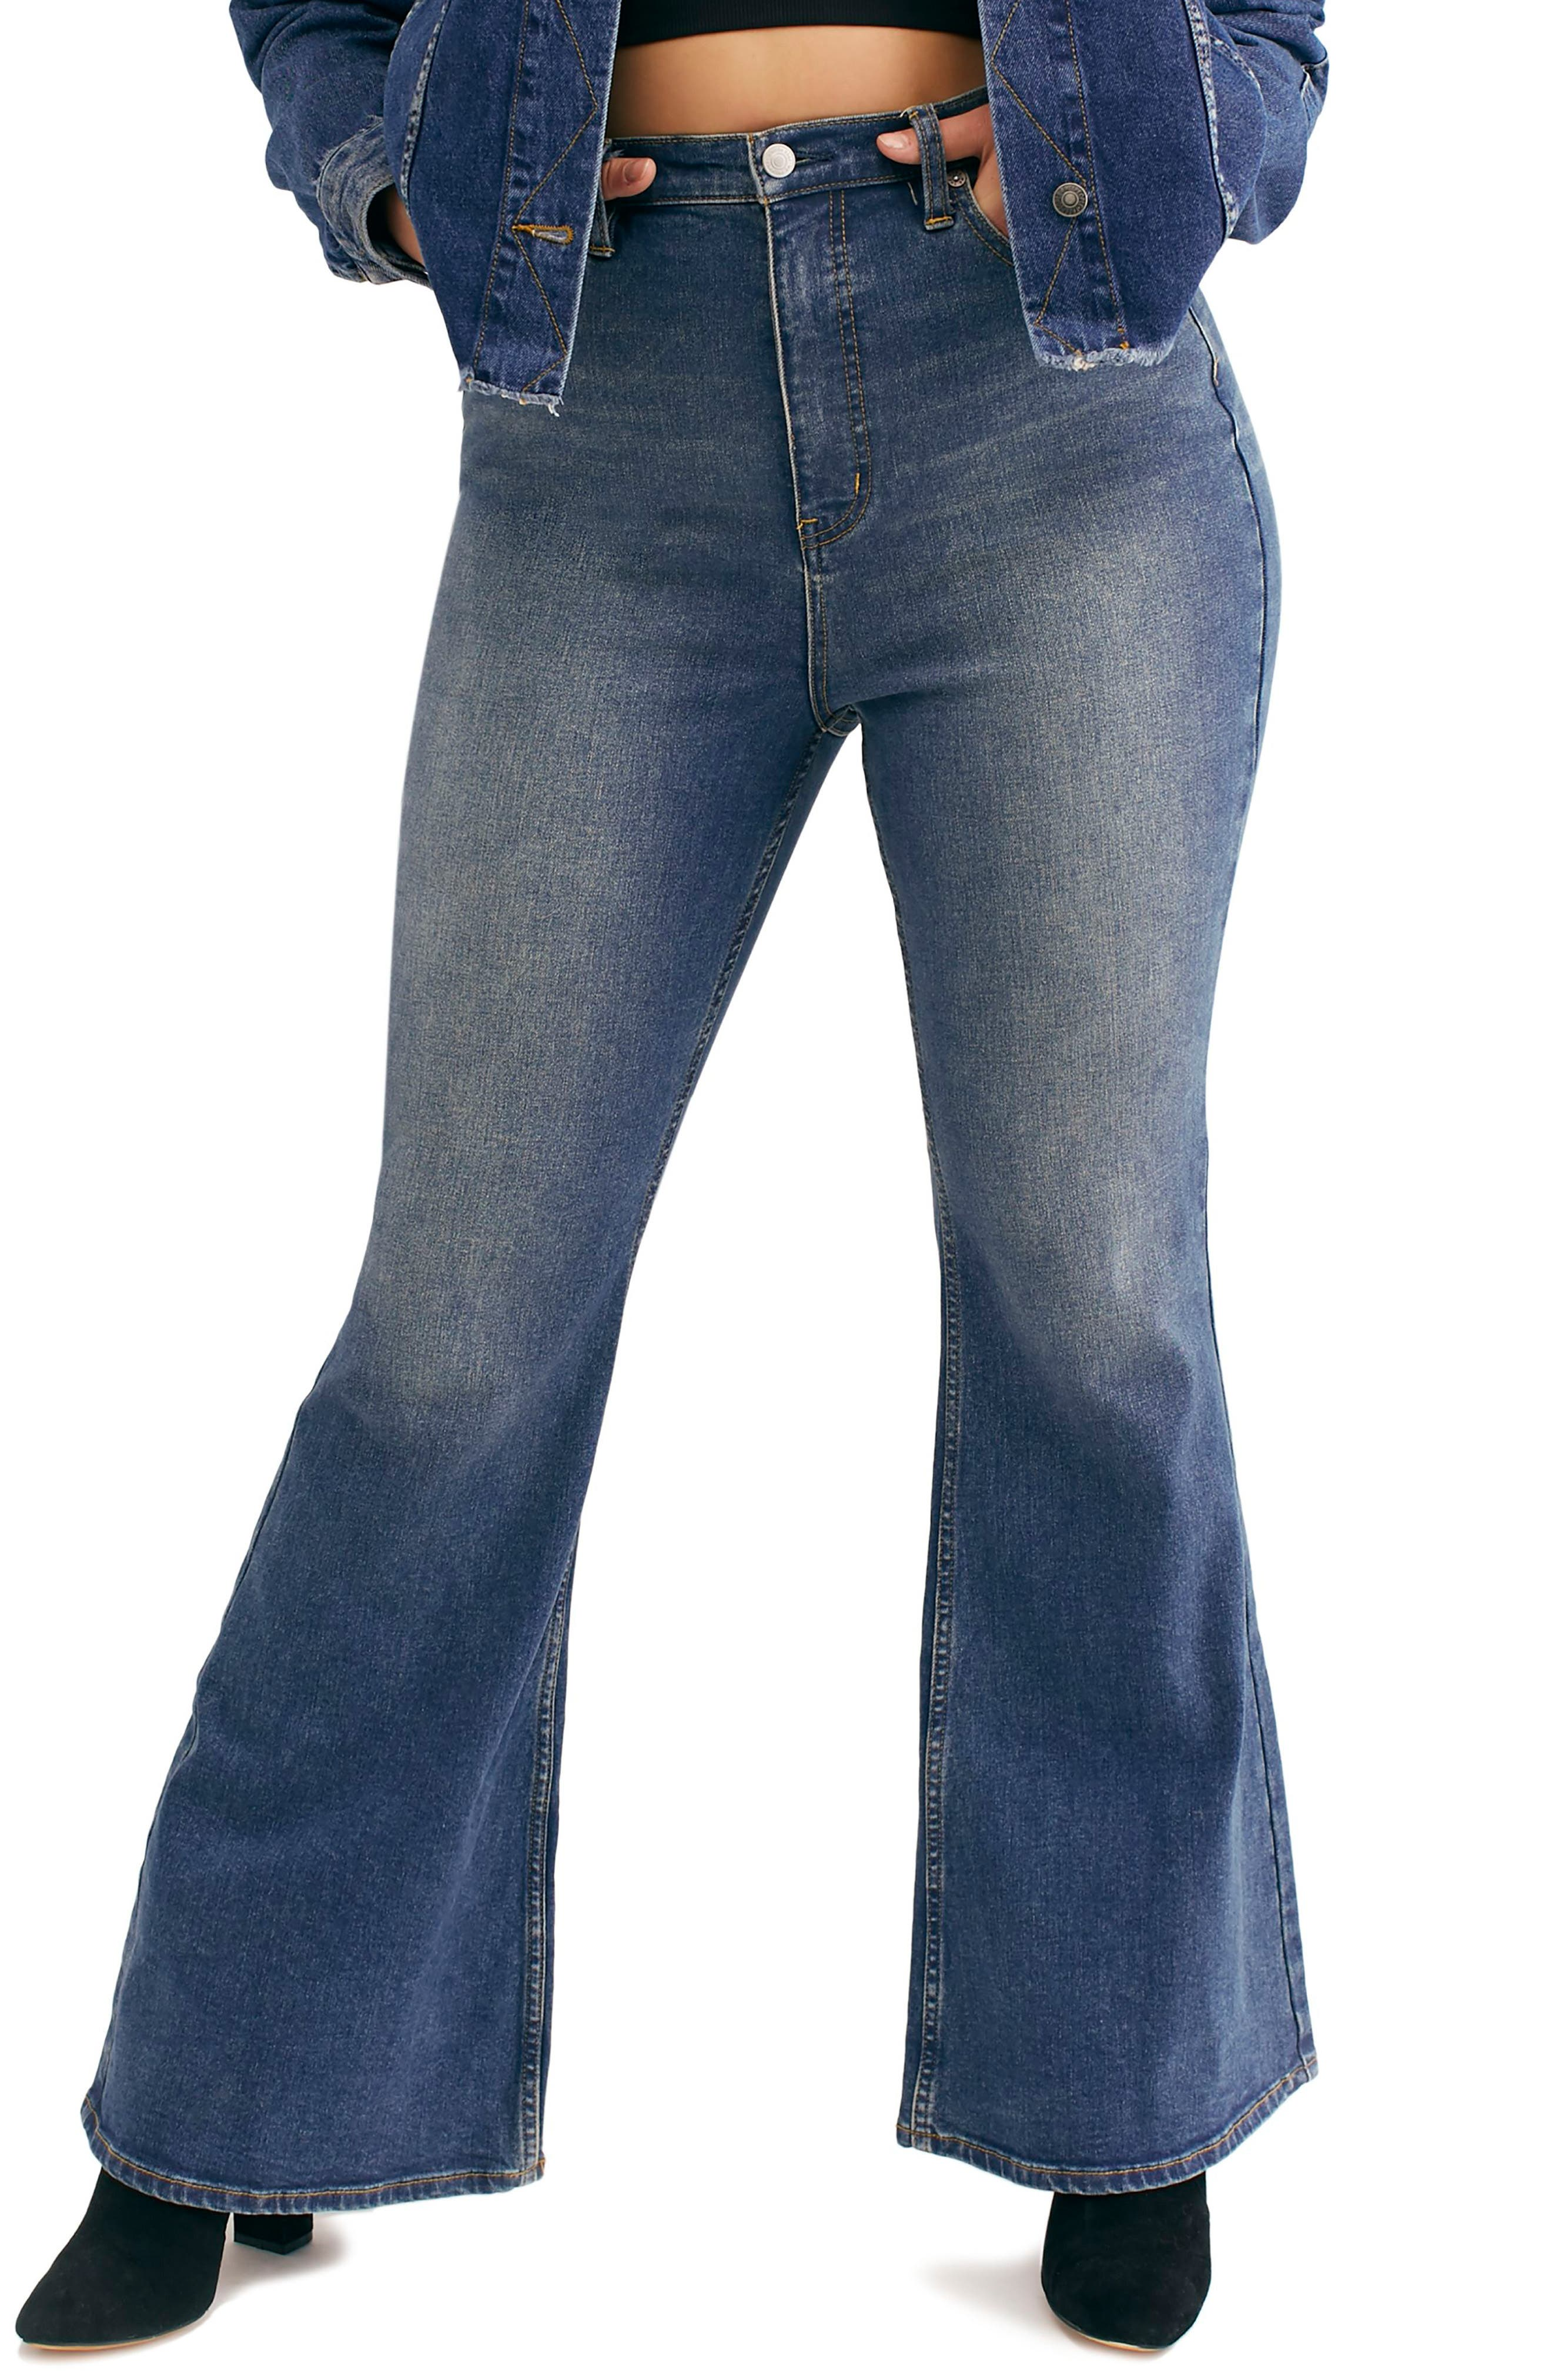 Vintage High Waisted Trousers, Sailor Pants, Jeans Womens Crvy By Free People Robin High Waist Flare Jeans Size 31 - Blue $49.97 AT vintagedancer.com